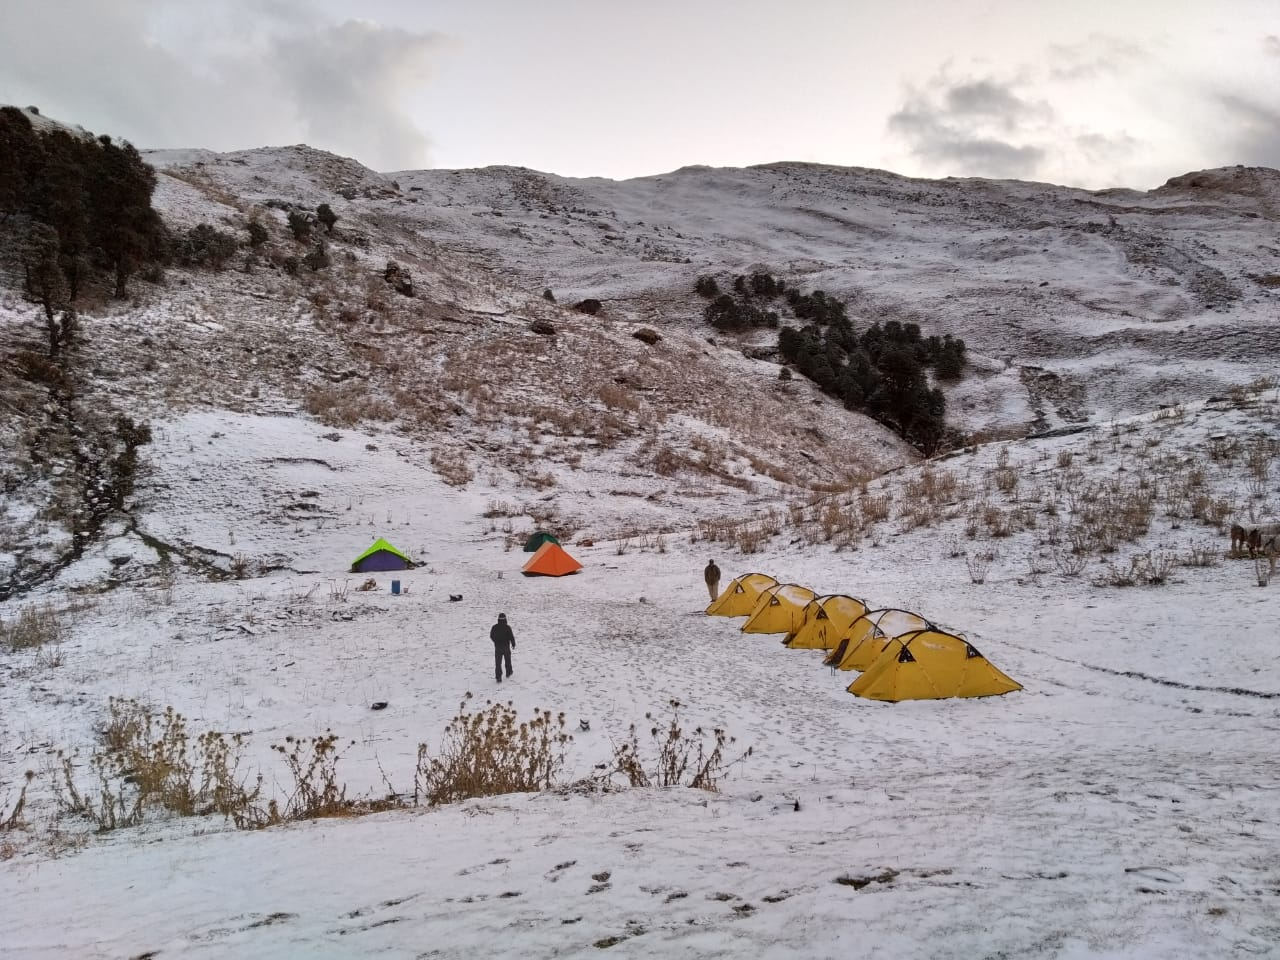 campsite at brahmatal trek during winter